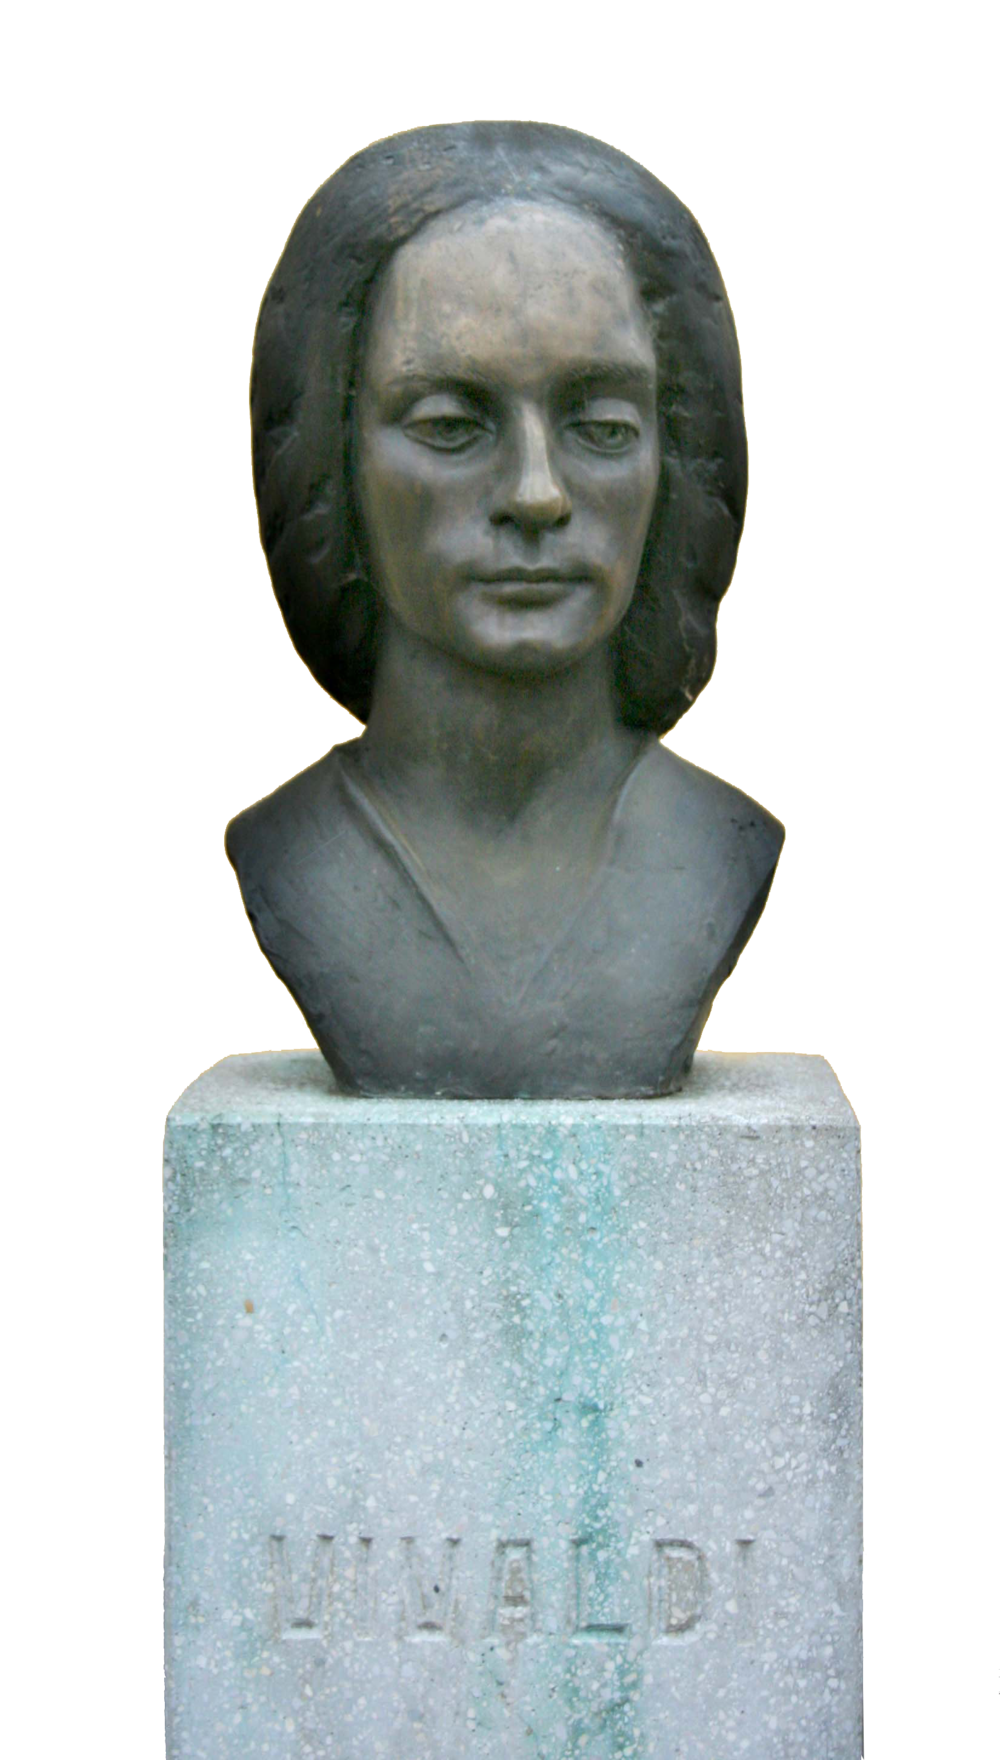 Bust of Vivaldi Sarospatak, Hungary